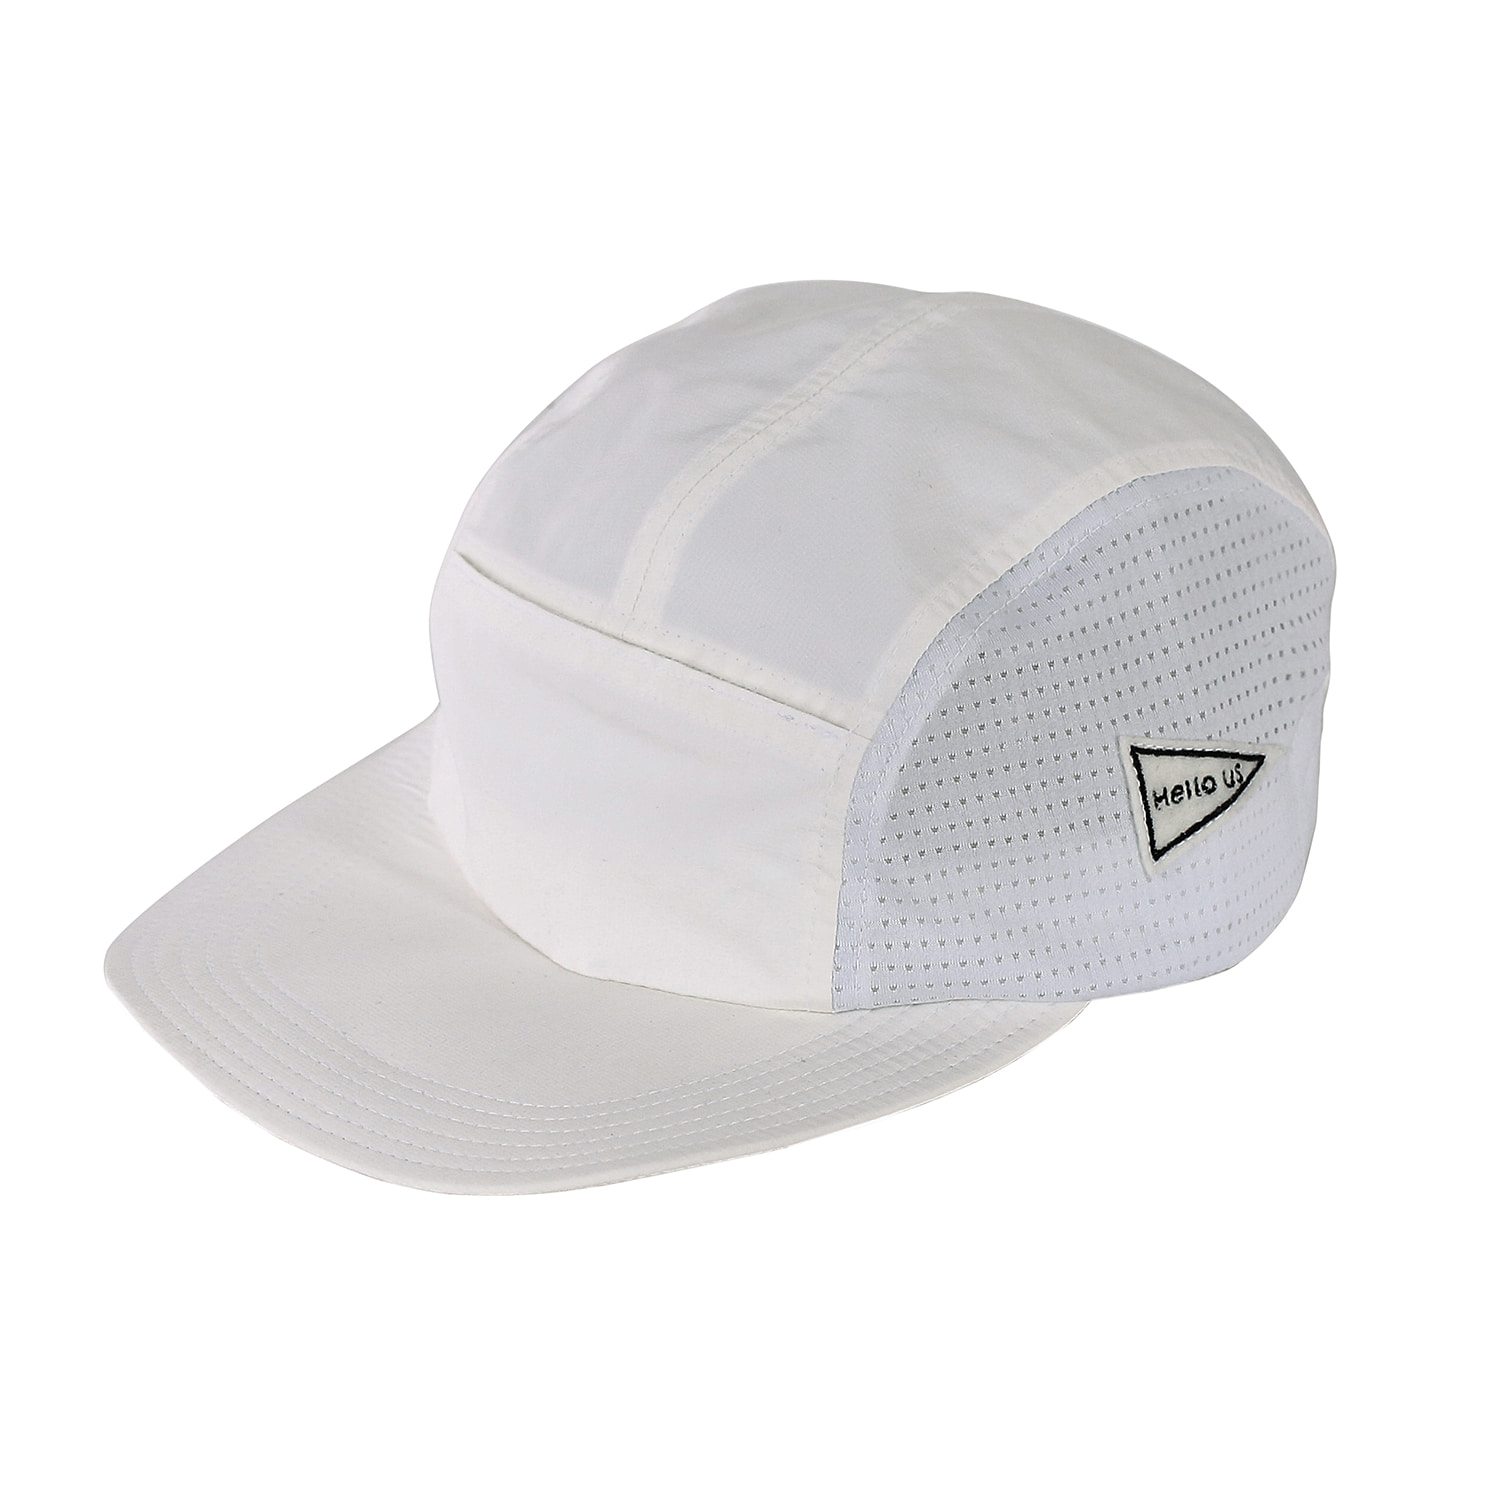 Waterproof Jet Cap - White